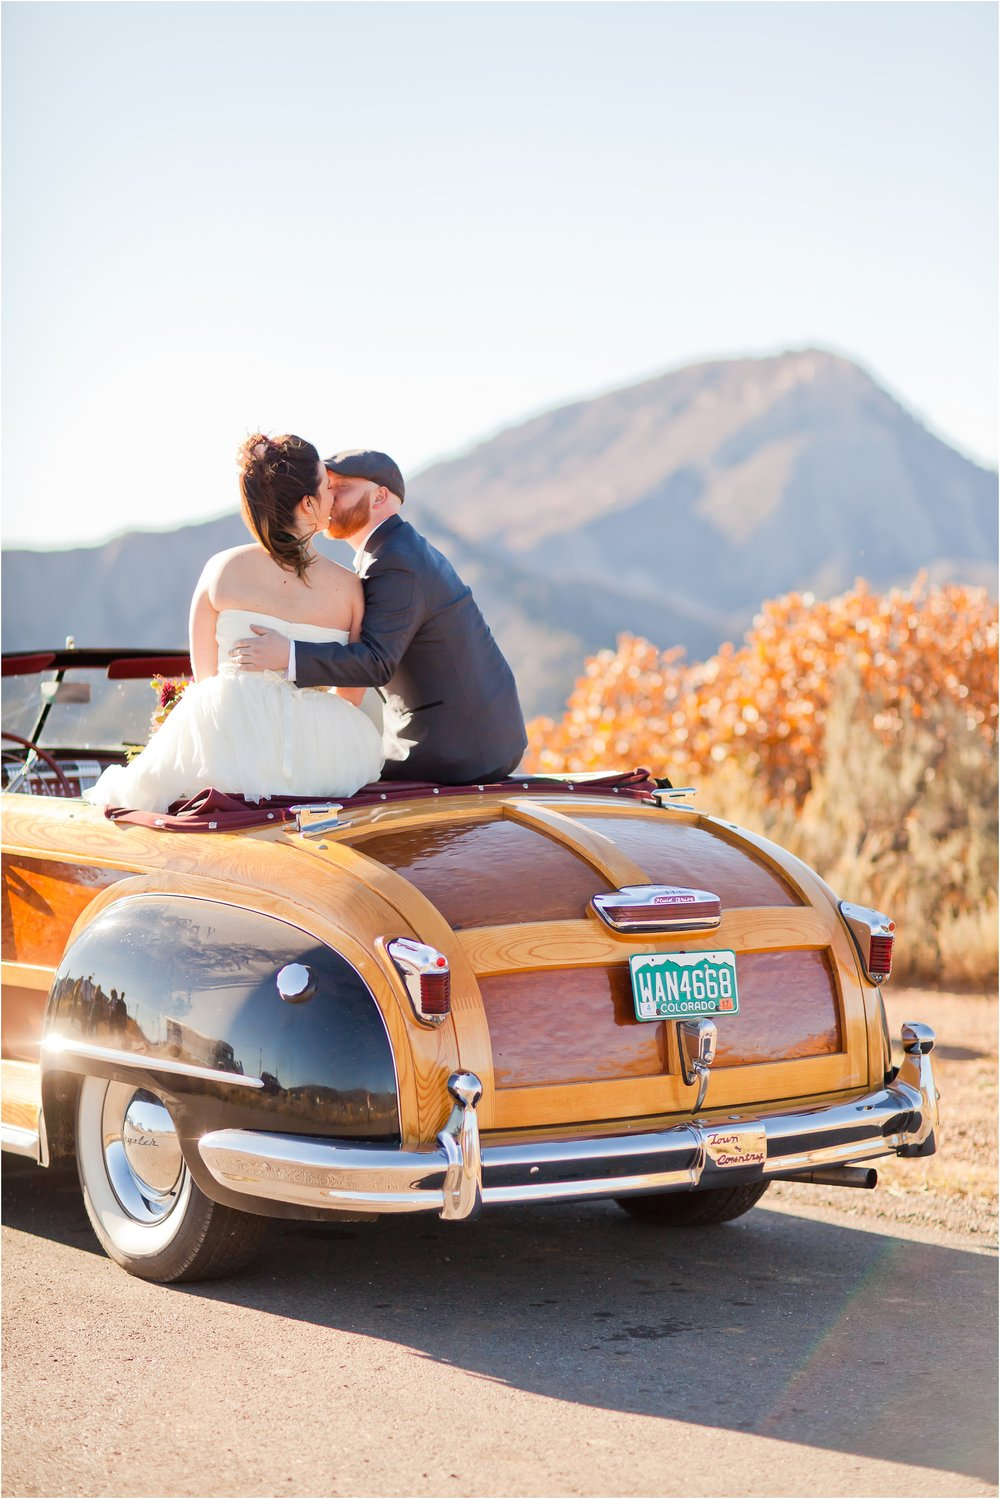 durango-classic-car-wedding-photographer.jpg